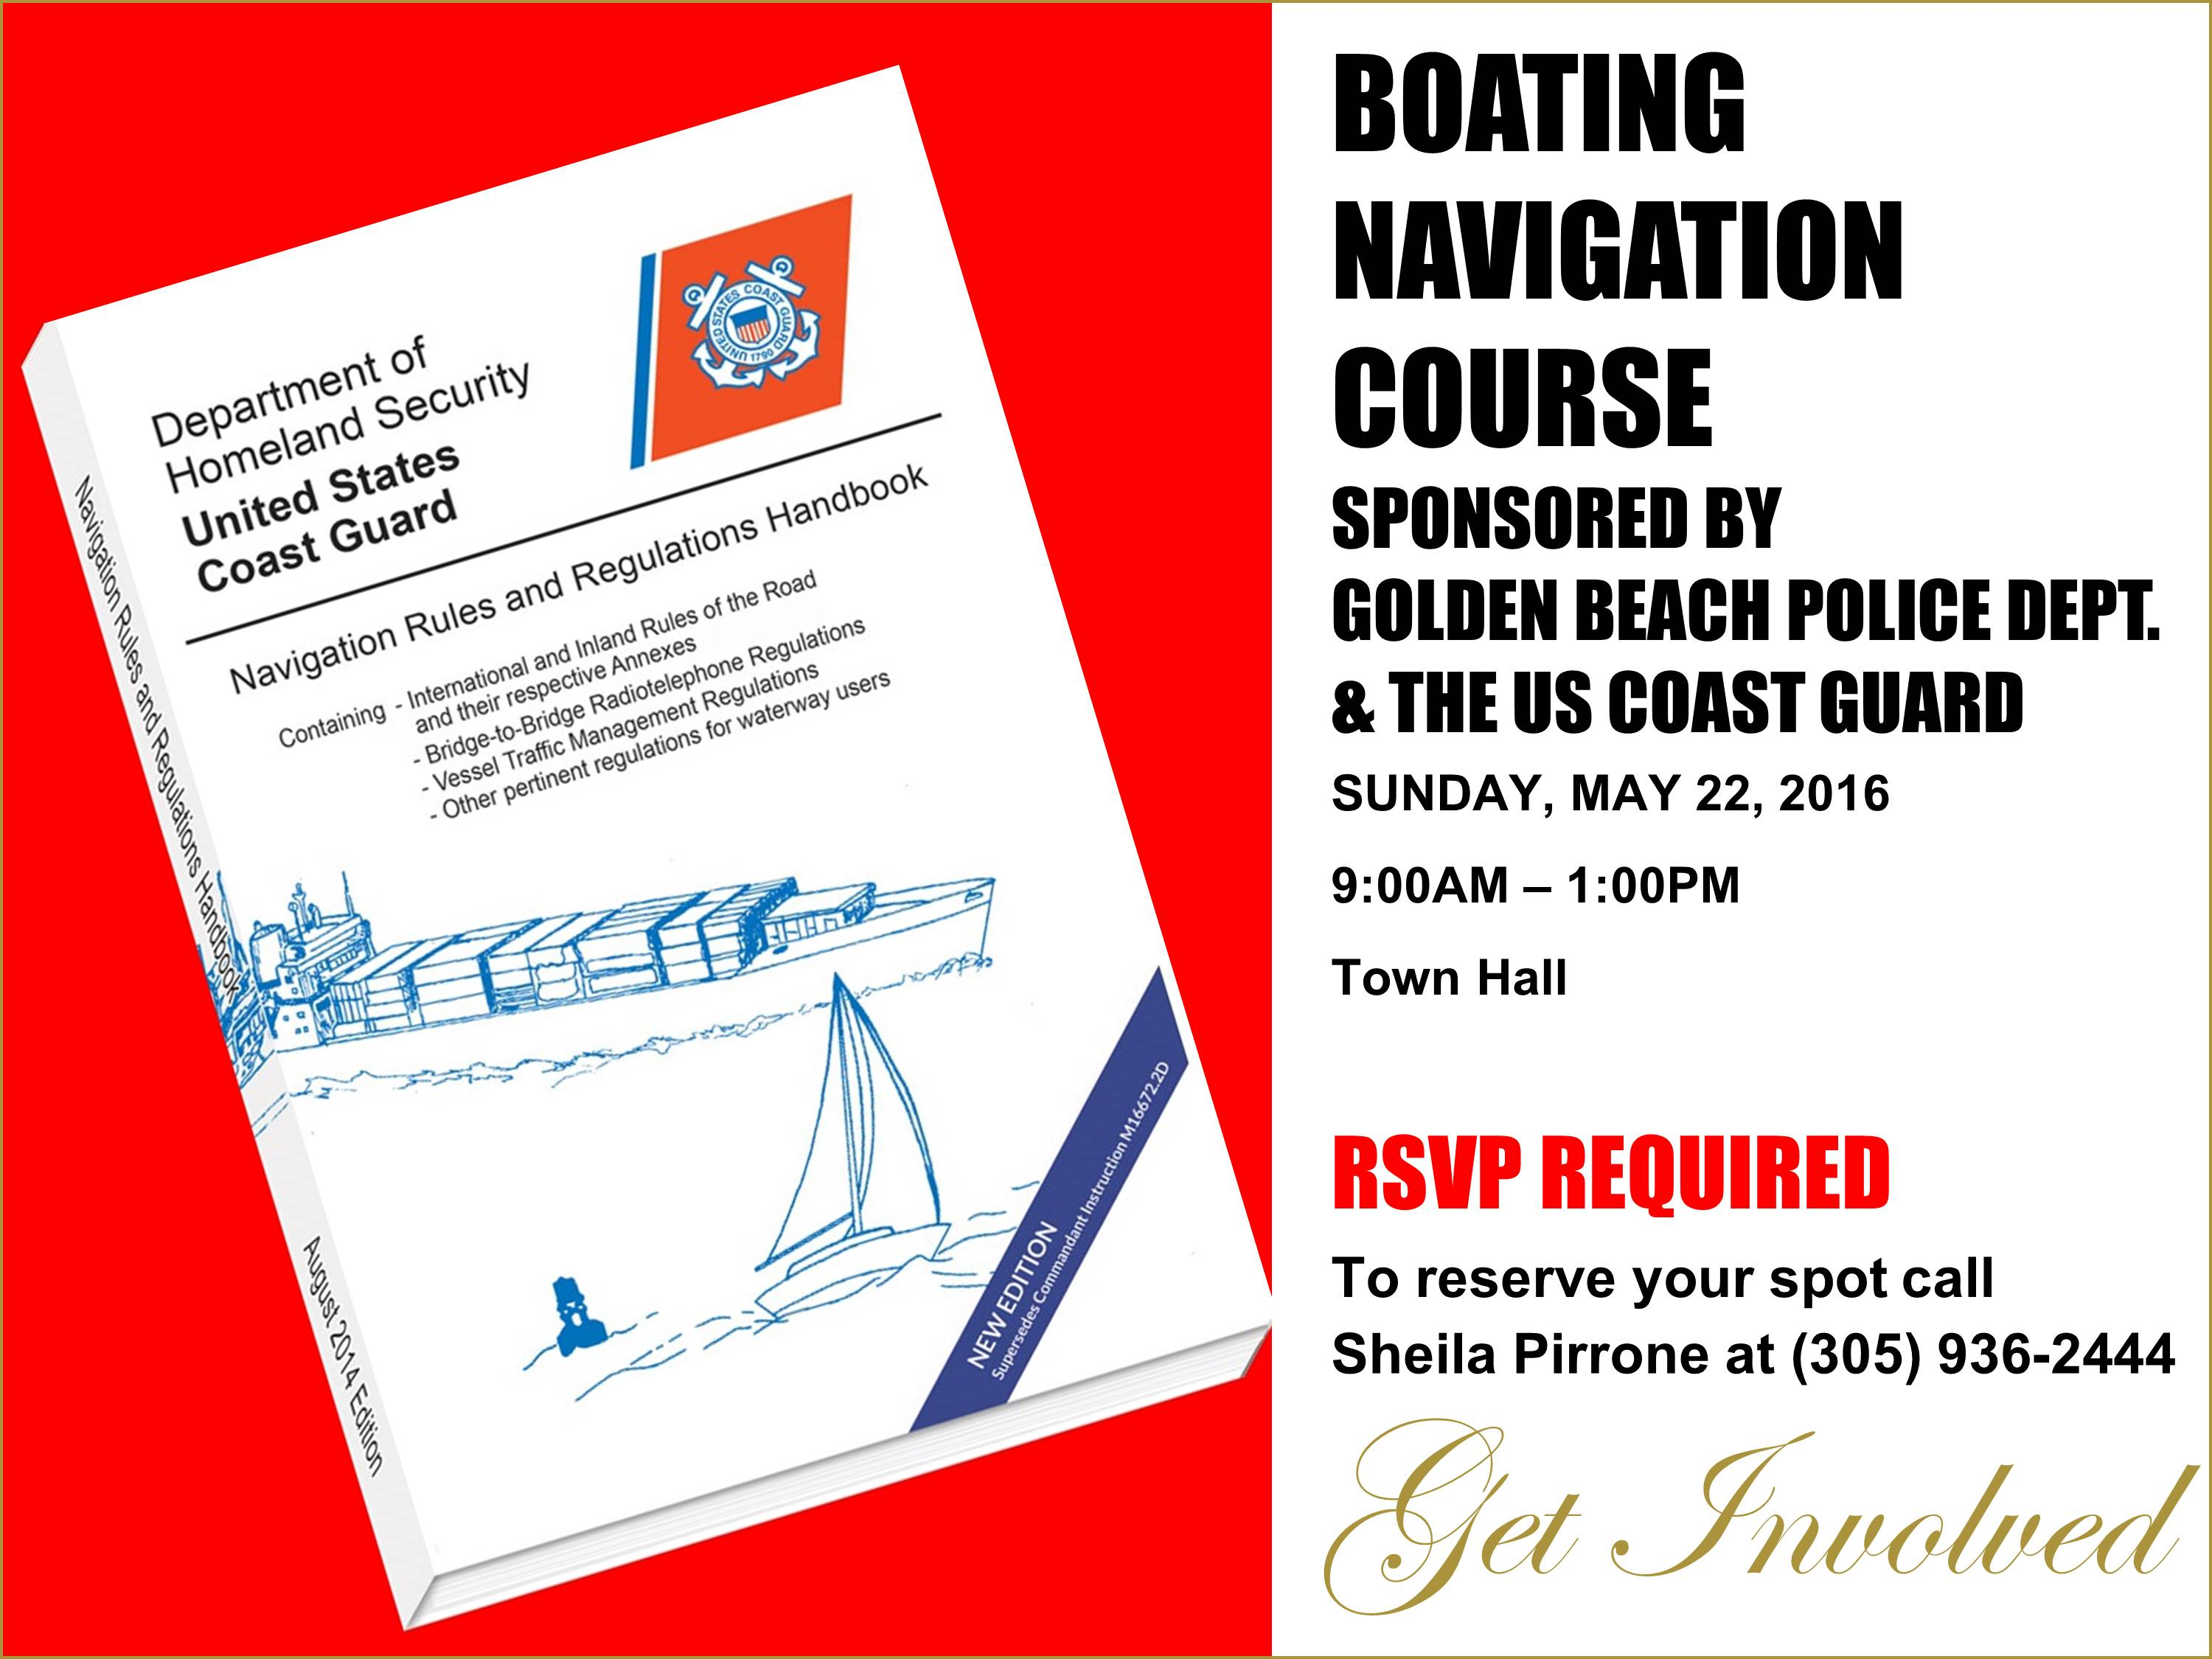 BOATING NAVIGATION 5-22-2016